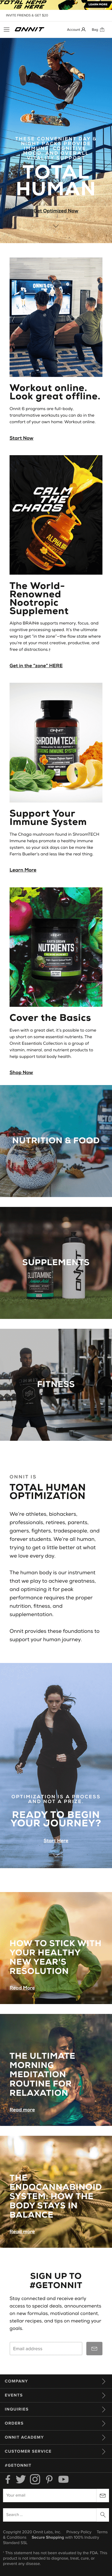 Onnit Coupon